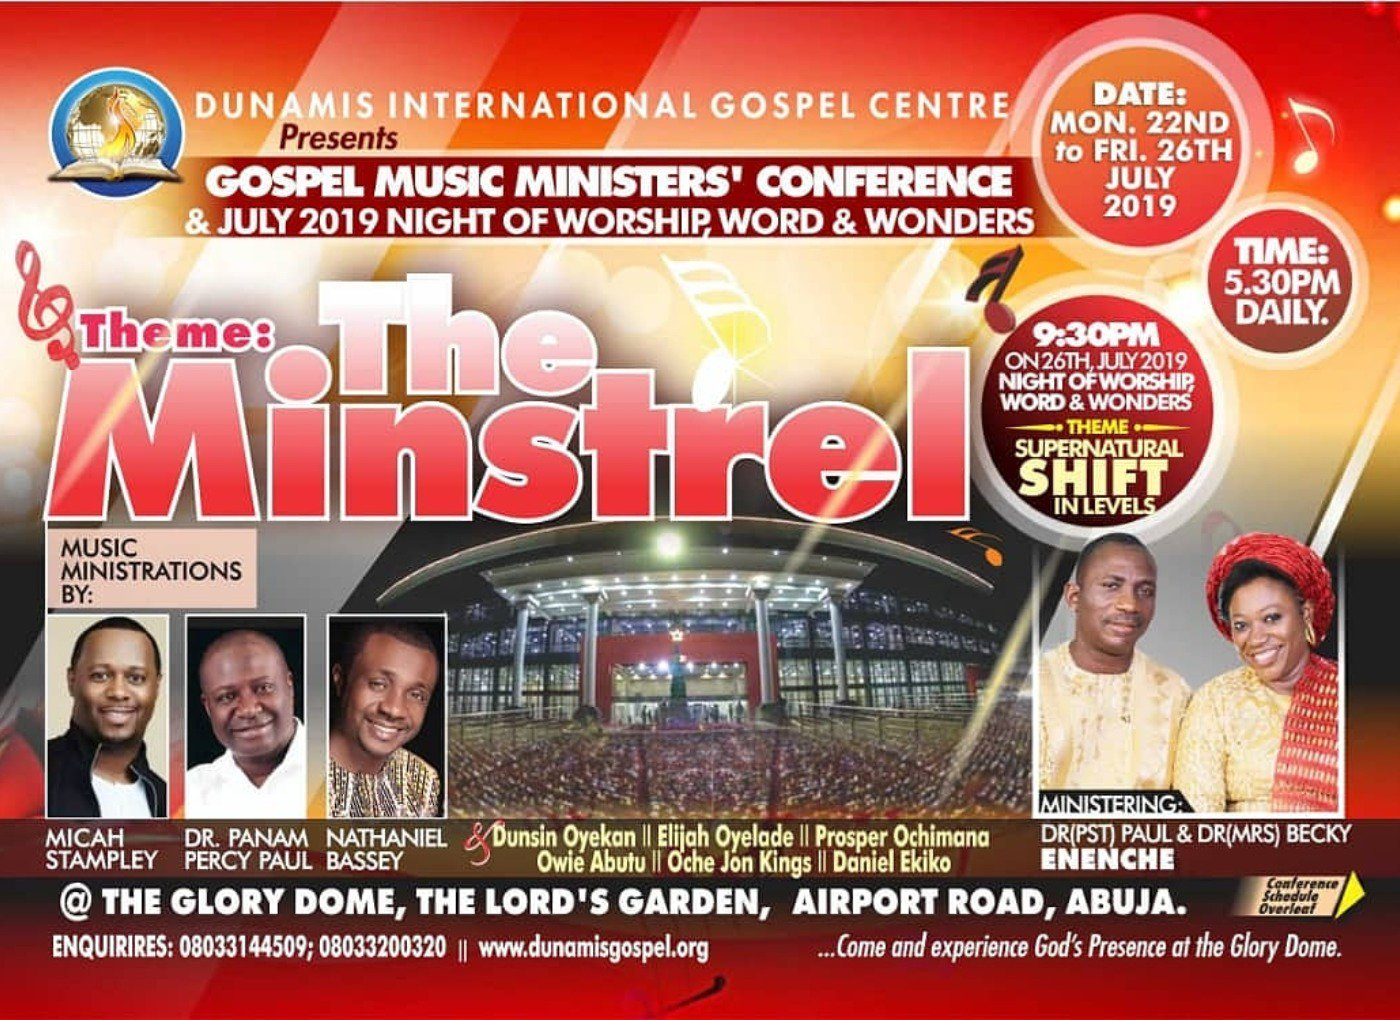 Dunamis Gospel Music Ministers' Conference - The Minstrel